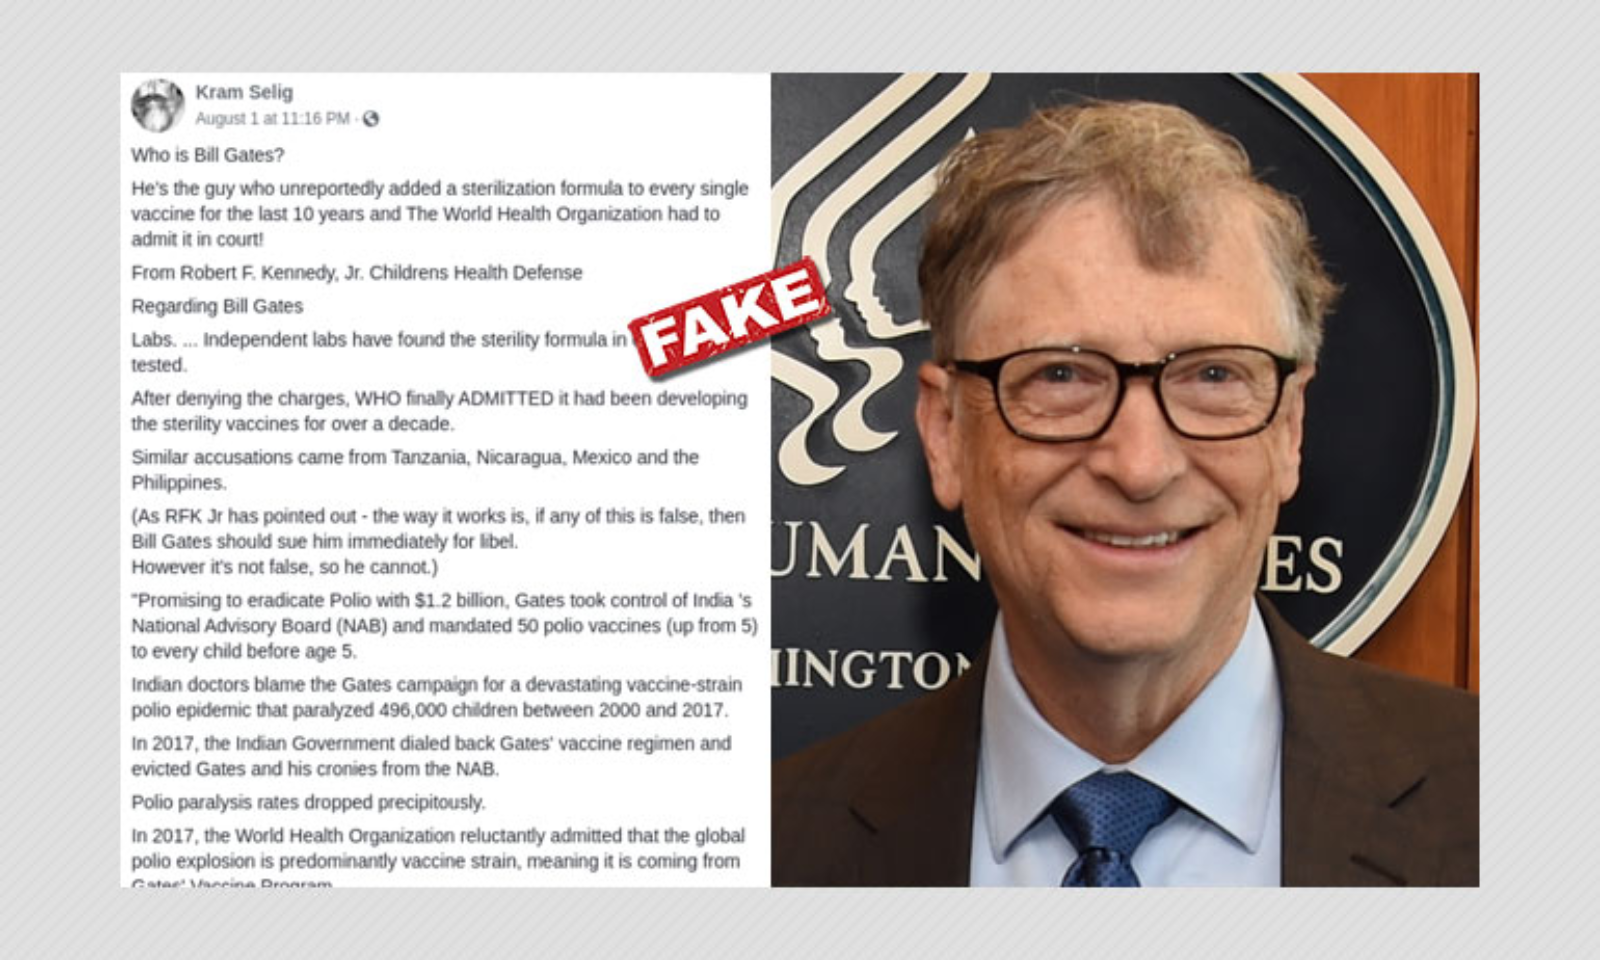 Did WHO Say Bill Gates Is Adding Sterilisation Formula In Vaccines?